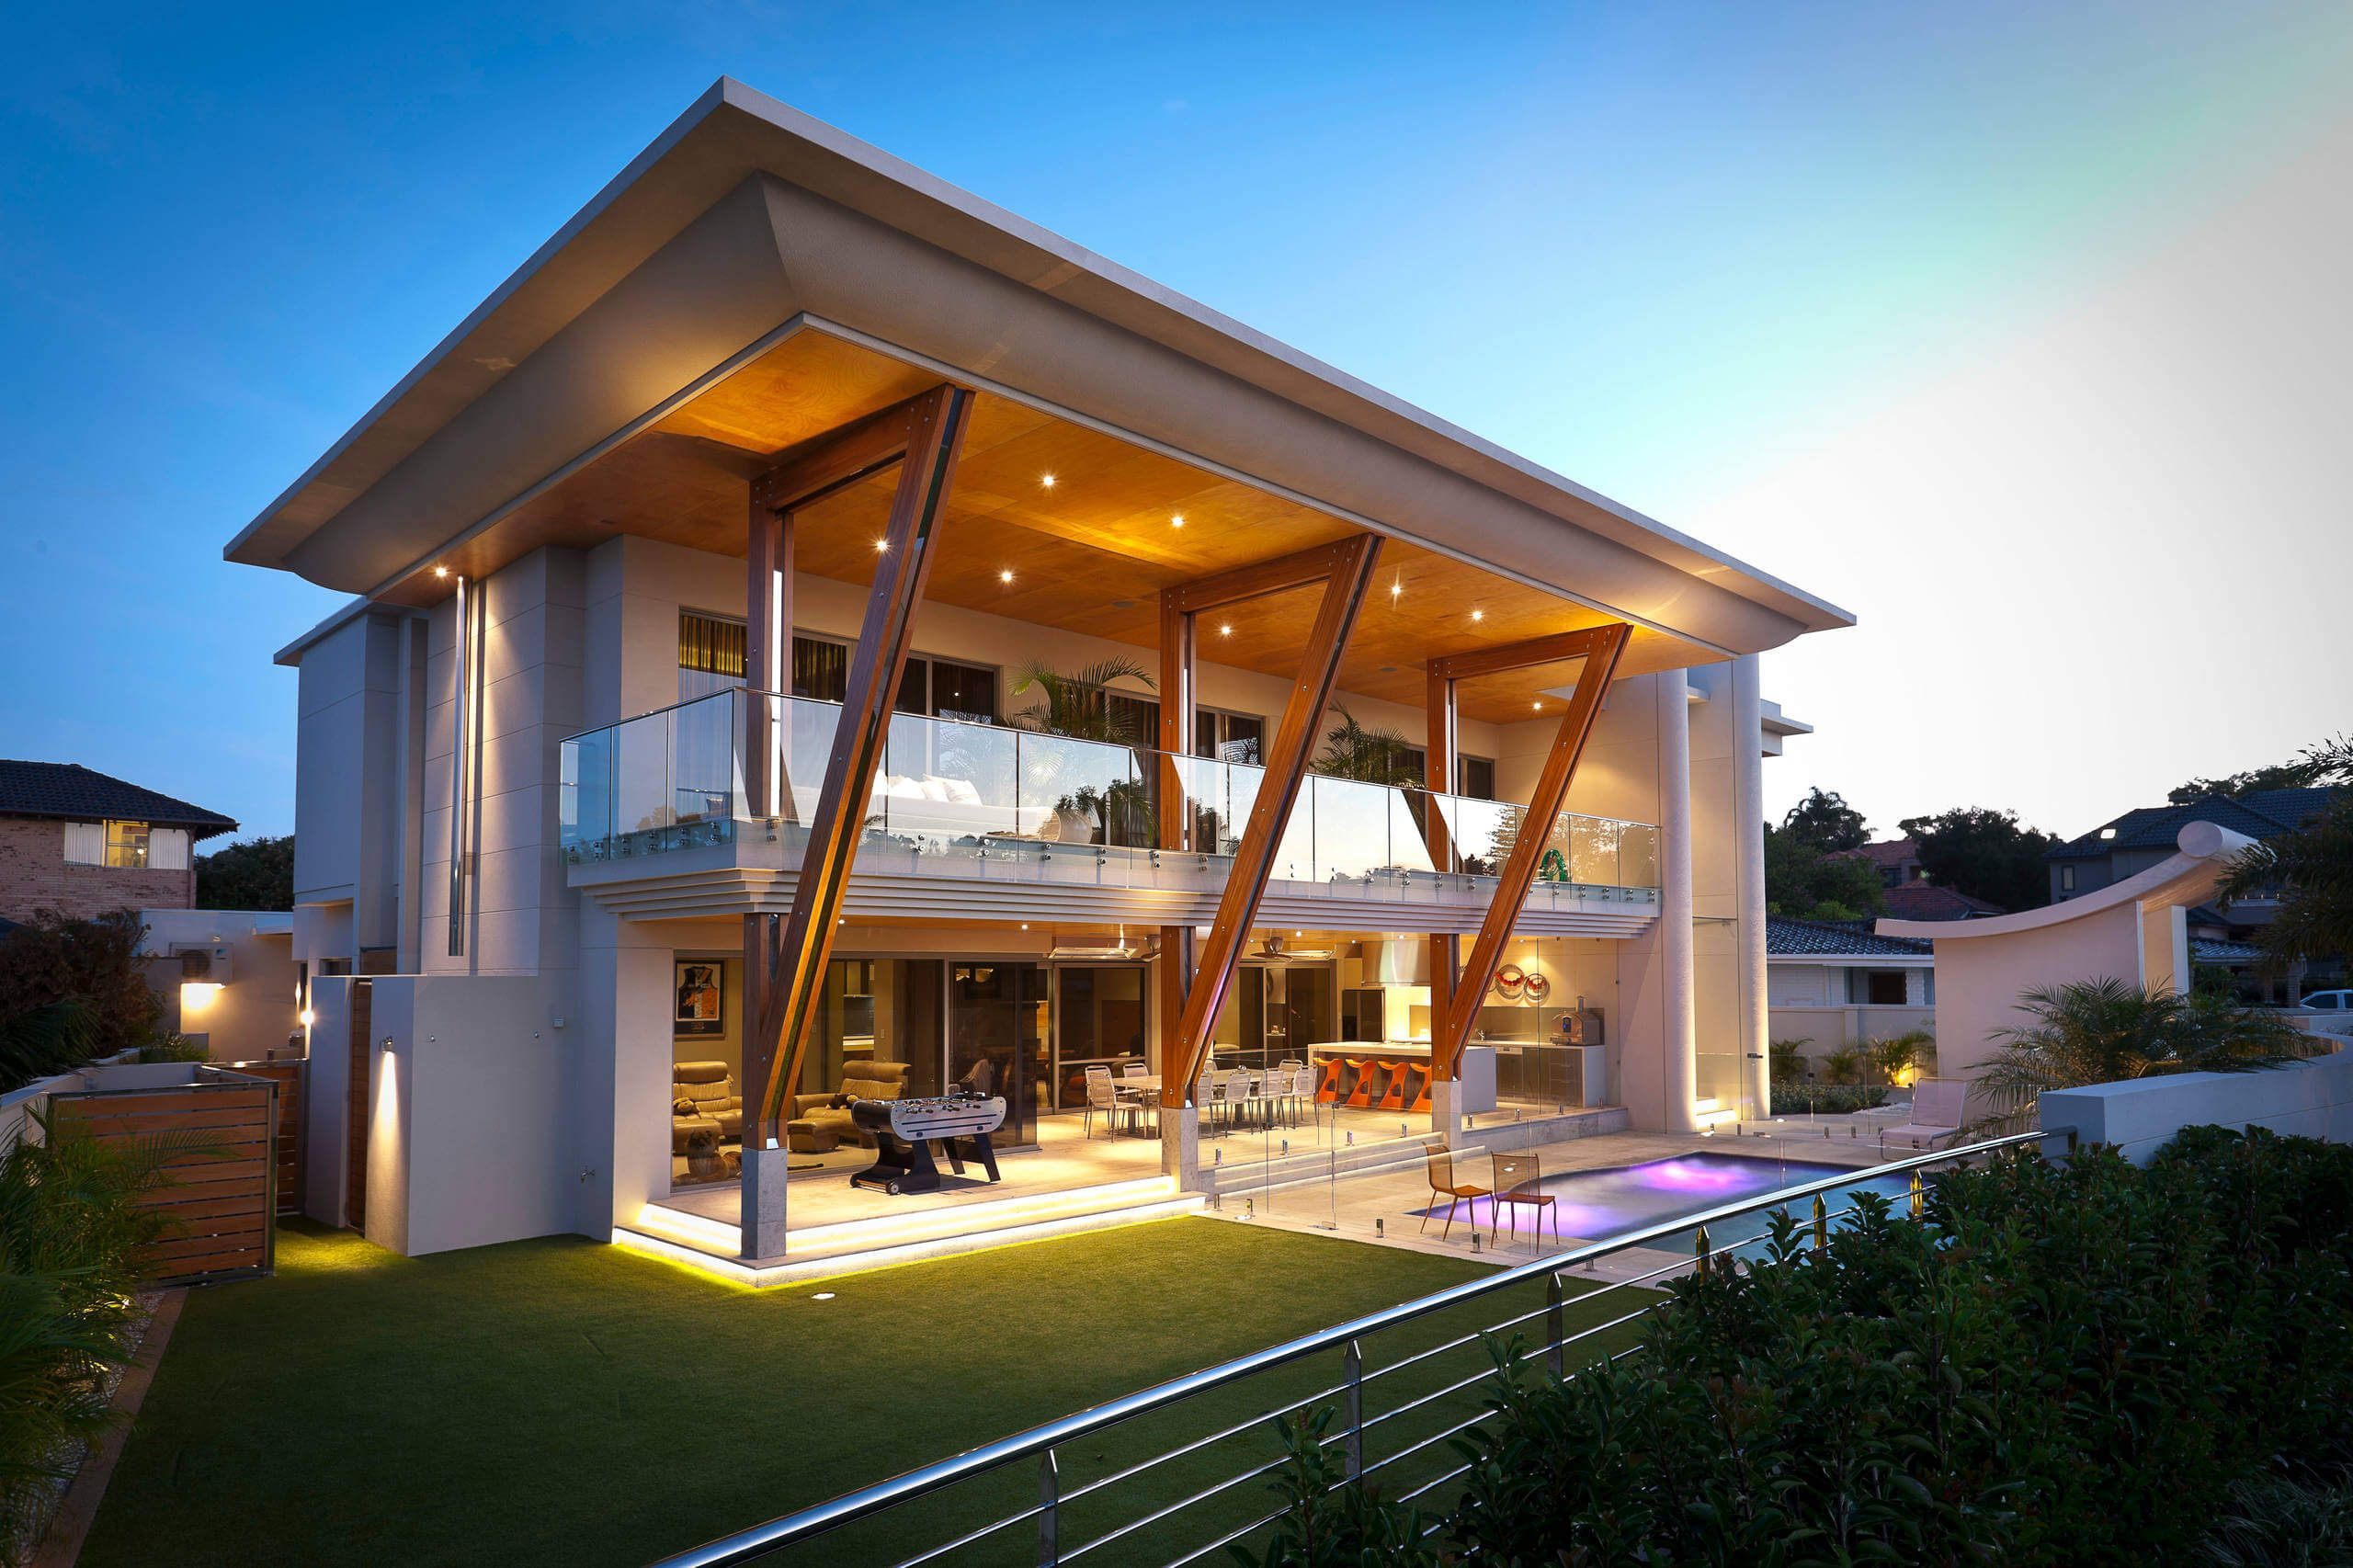 Applecross house by brian burke homes modern roof design home contemporary houses also arquitectura pinterest rh cl